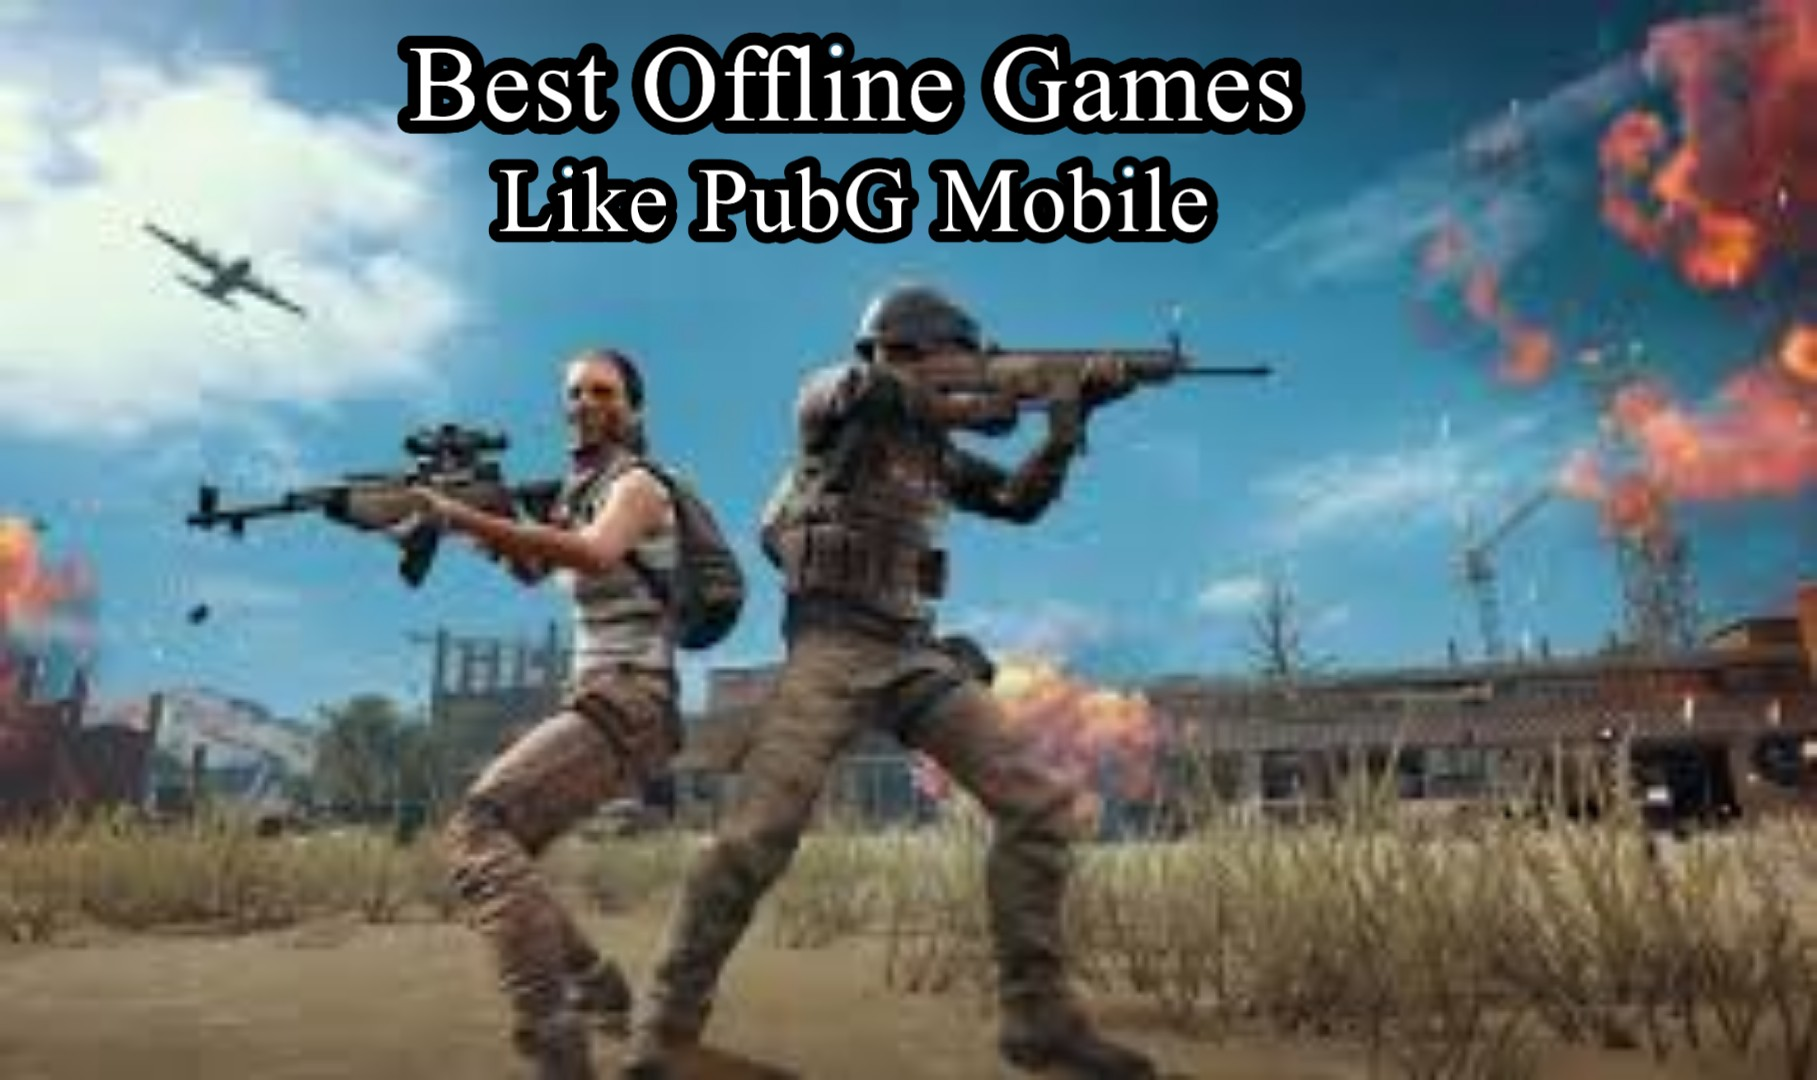 Best Offline Games Like PubG